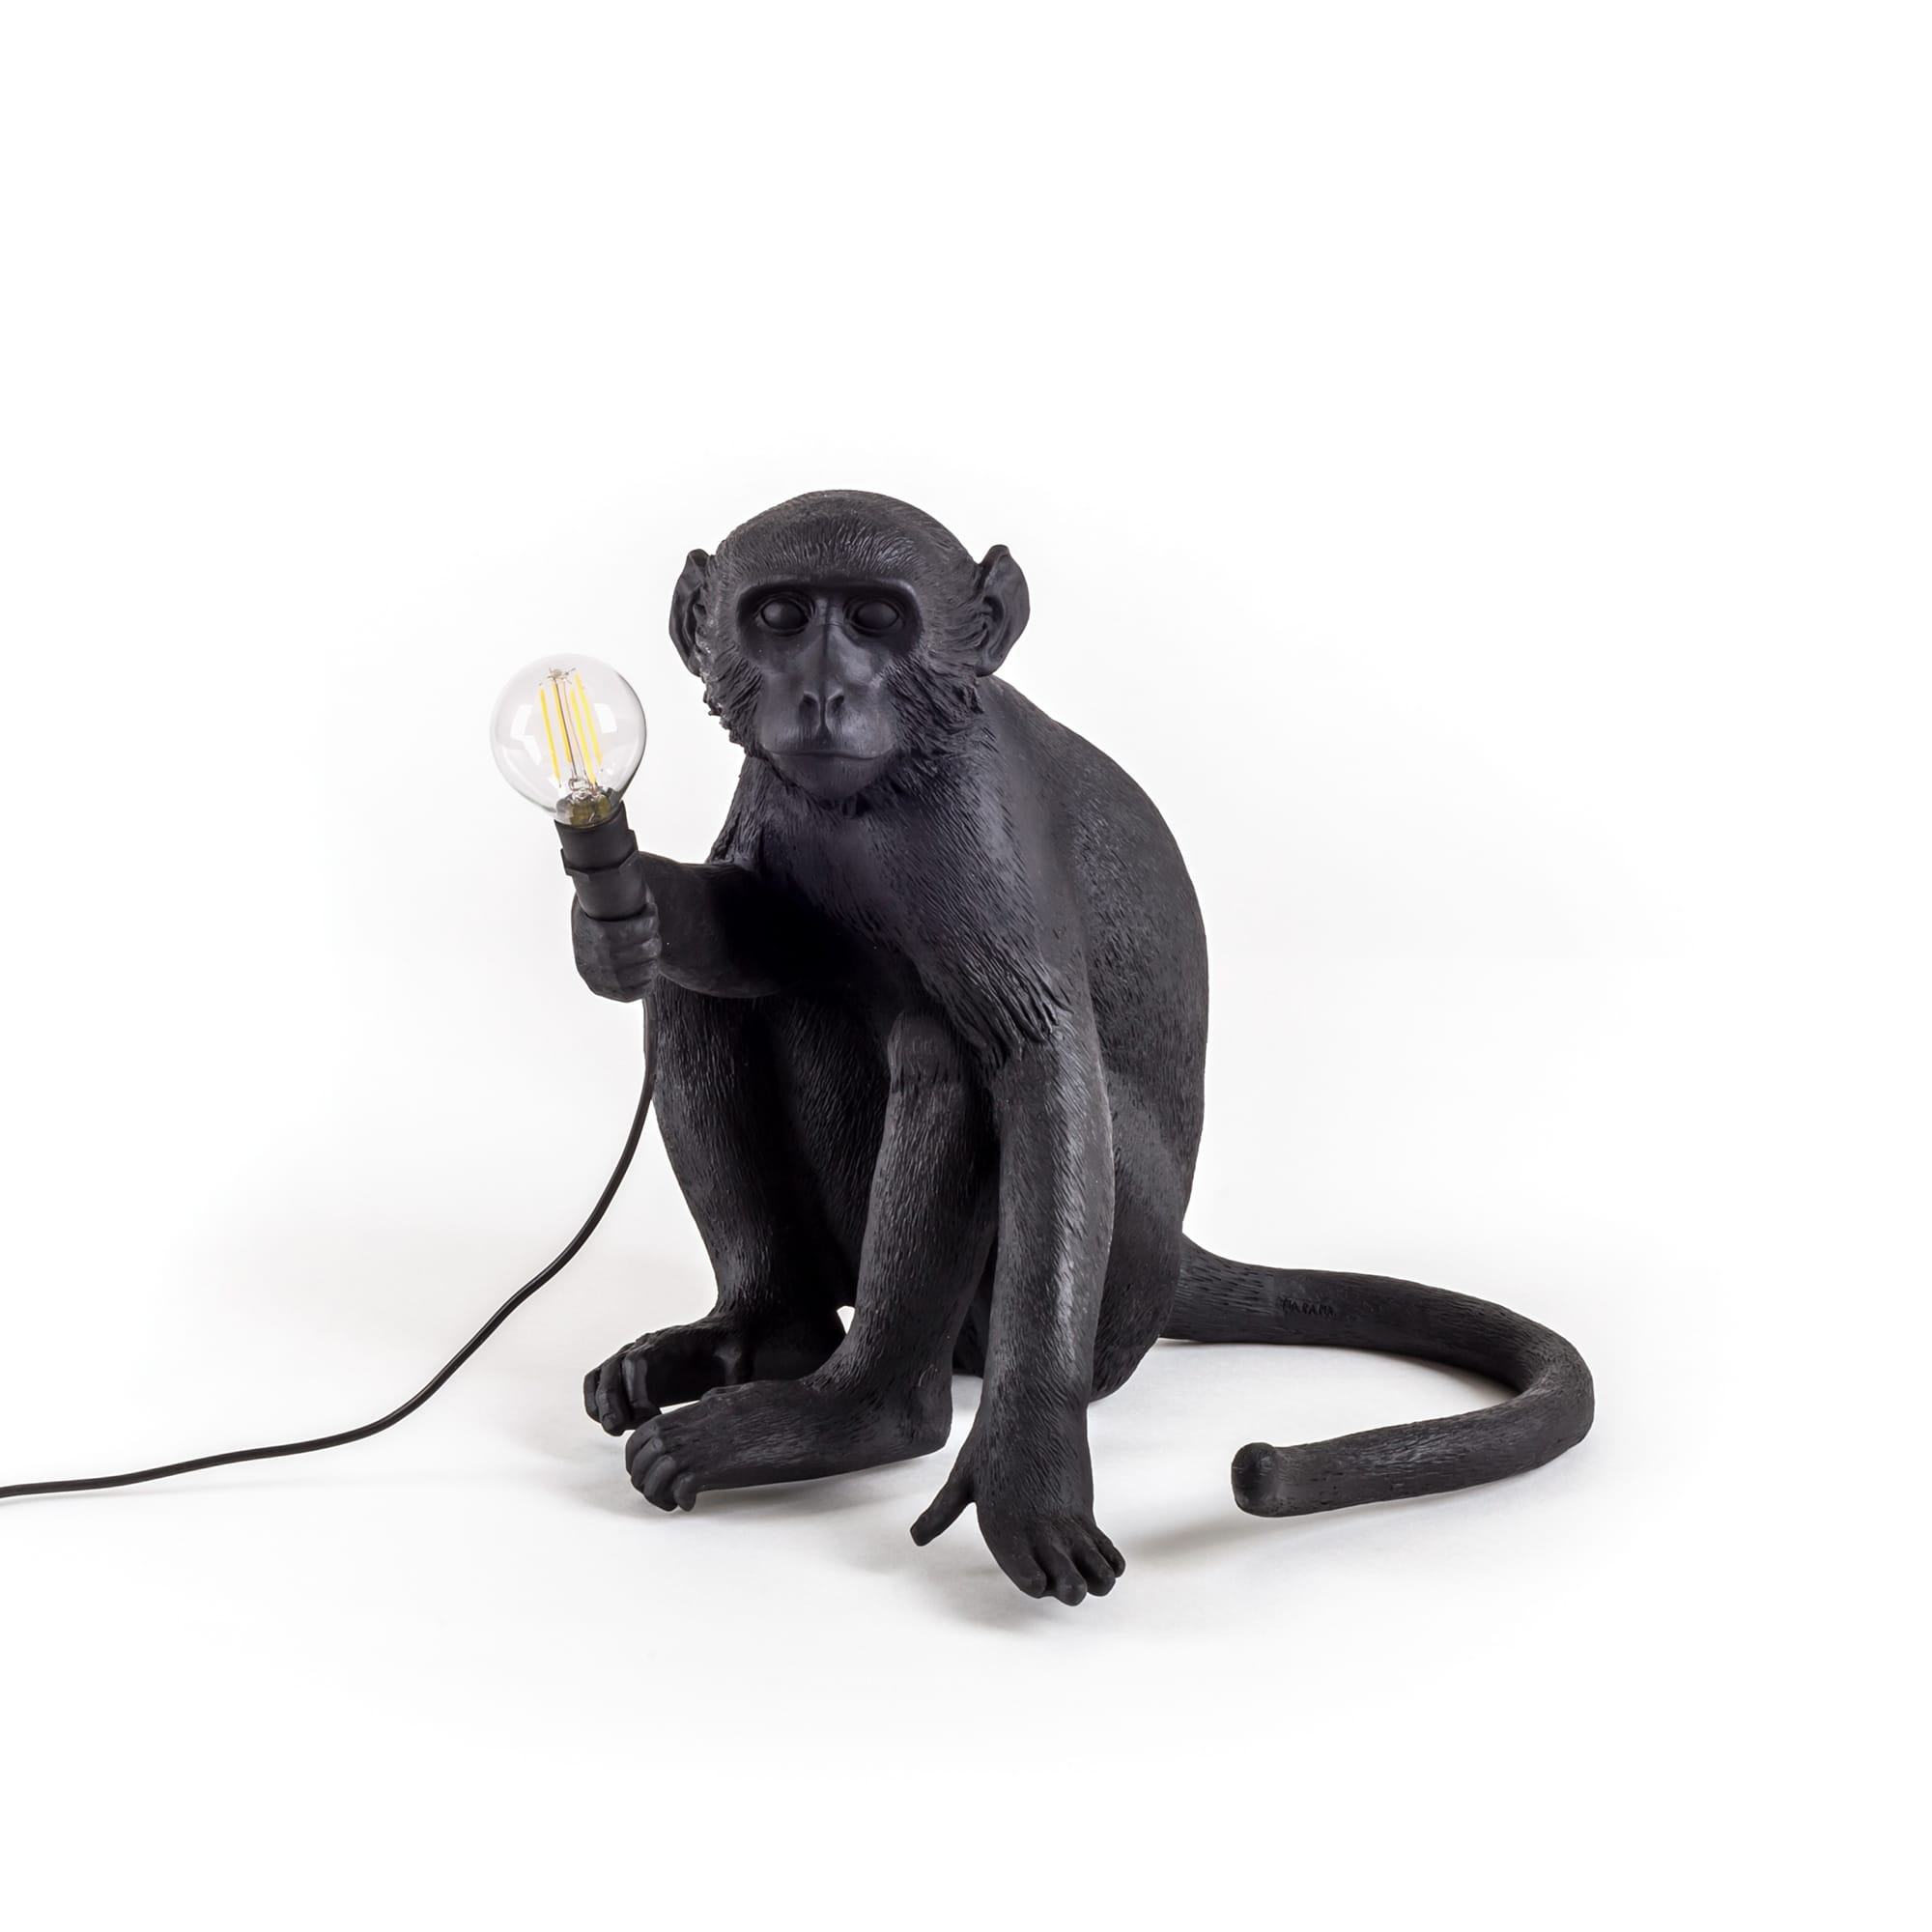 Monkey Lamp Sitting, Vit Seletti @ Rum21.se